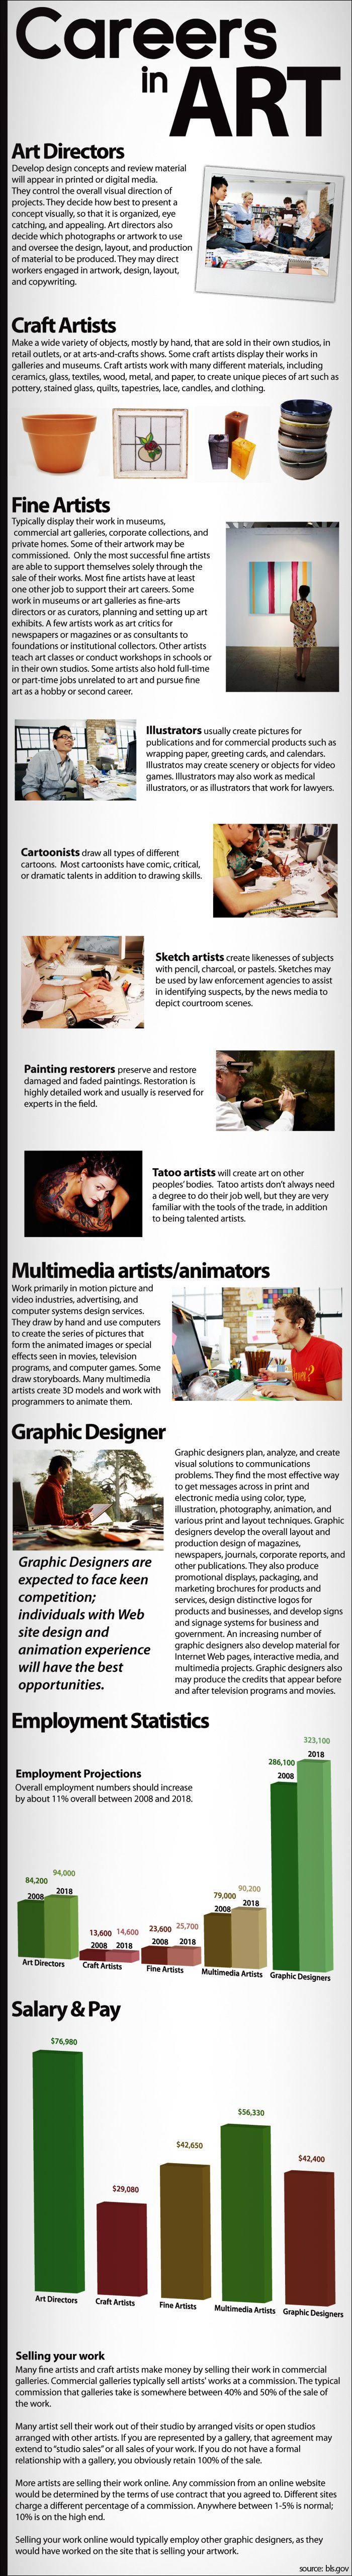 best ideas about art careers visual arts art careers in art infographic by madison art shop